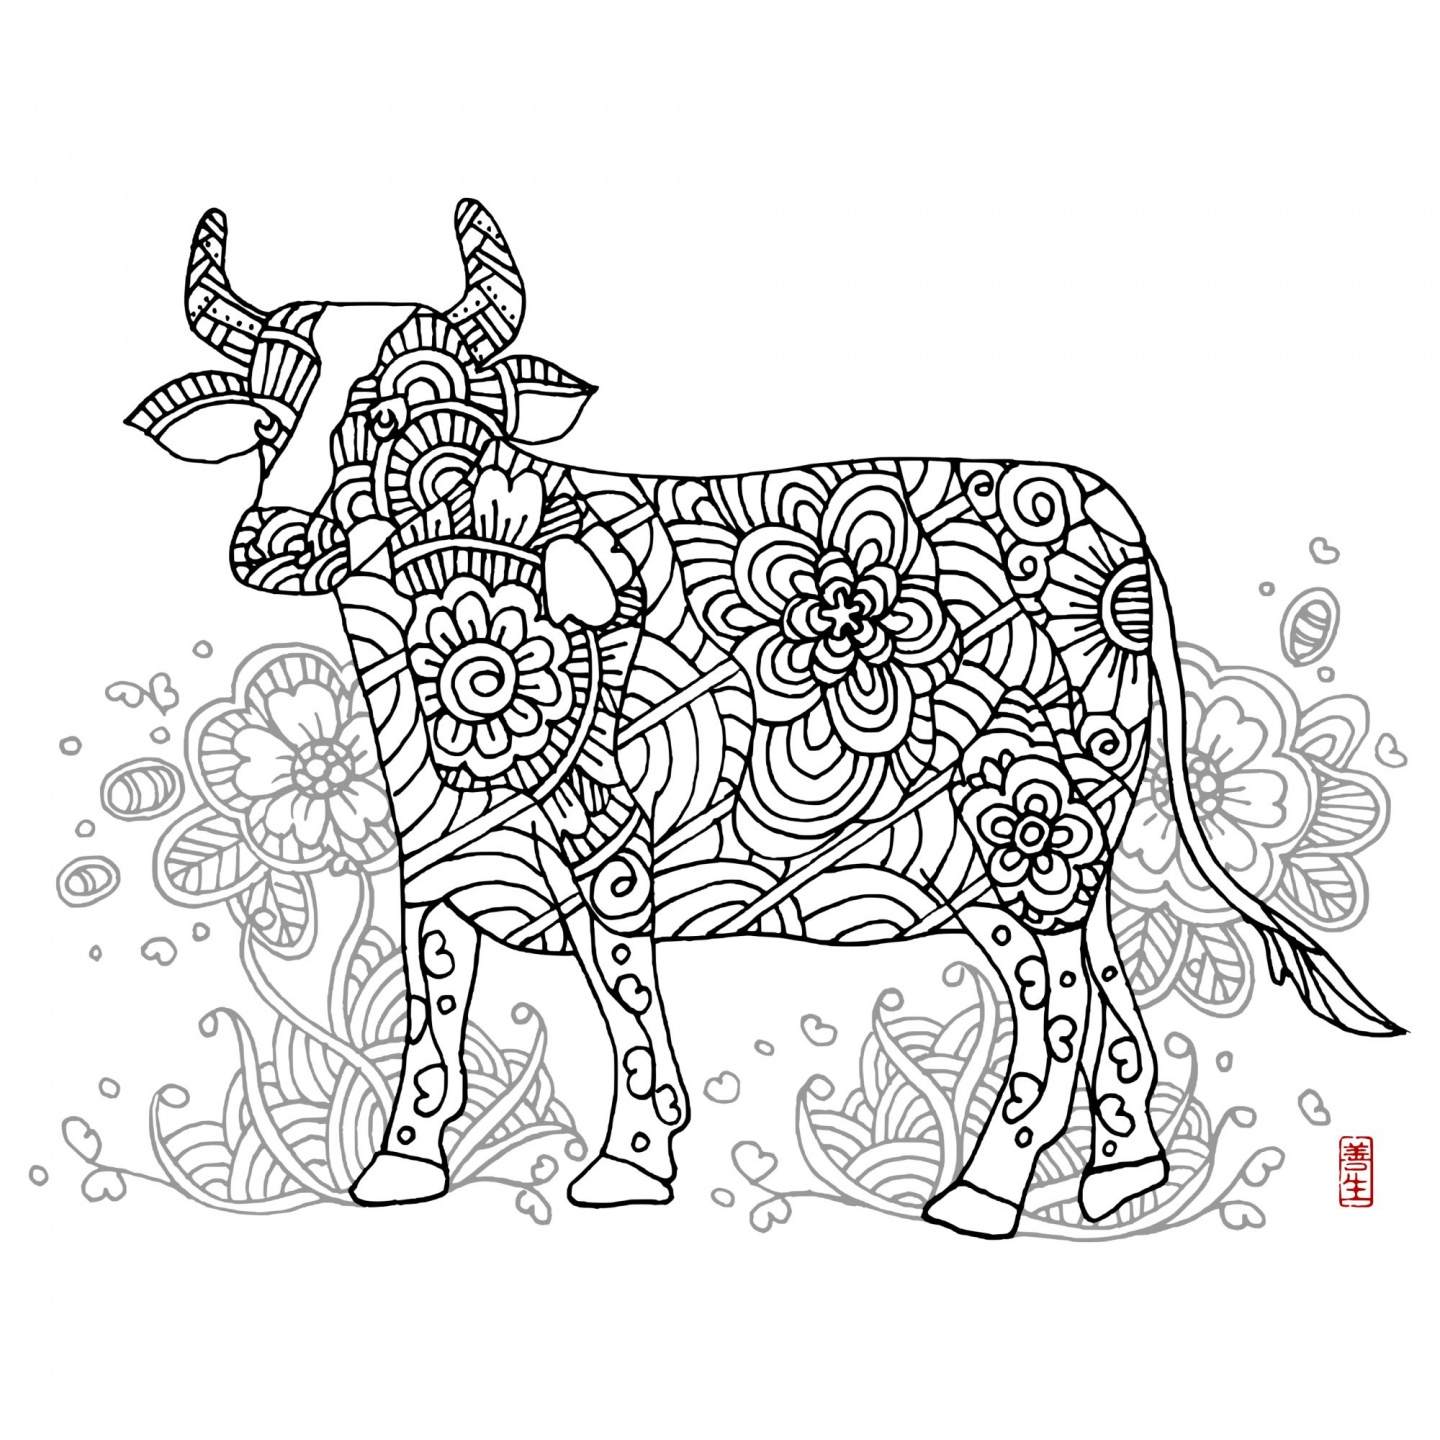 Chinese zodiac : COW